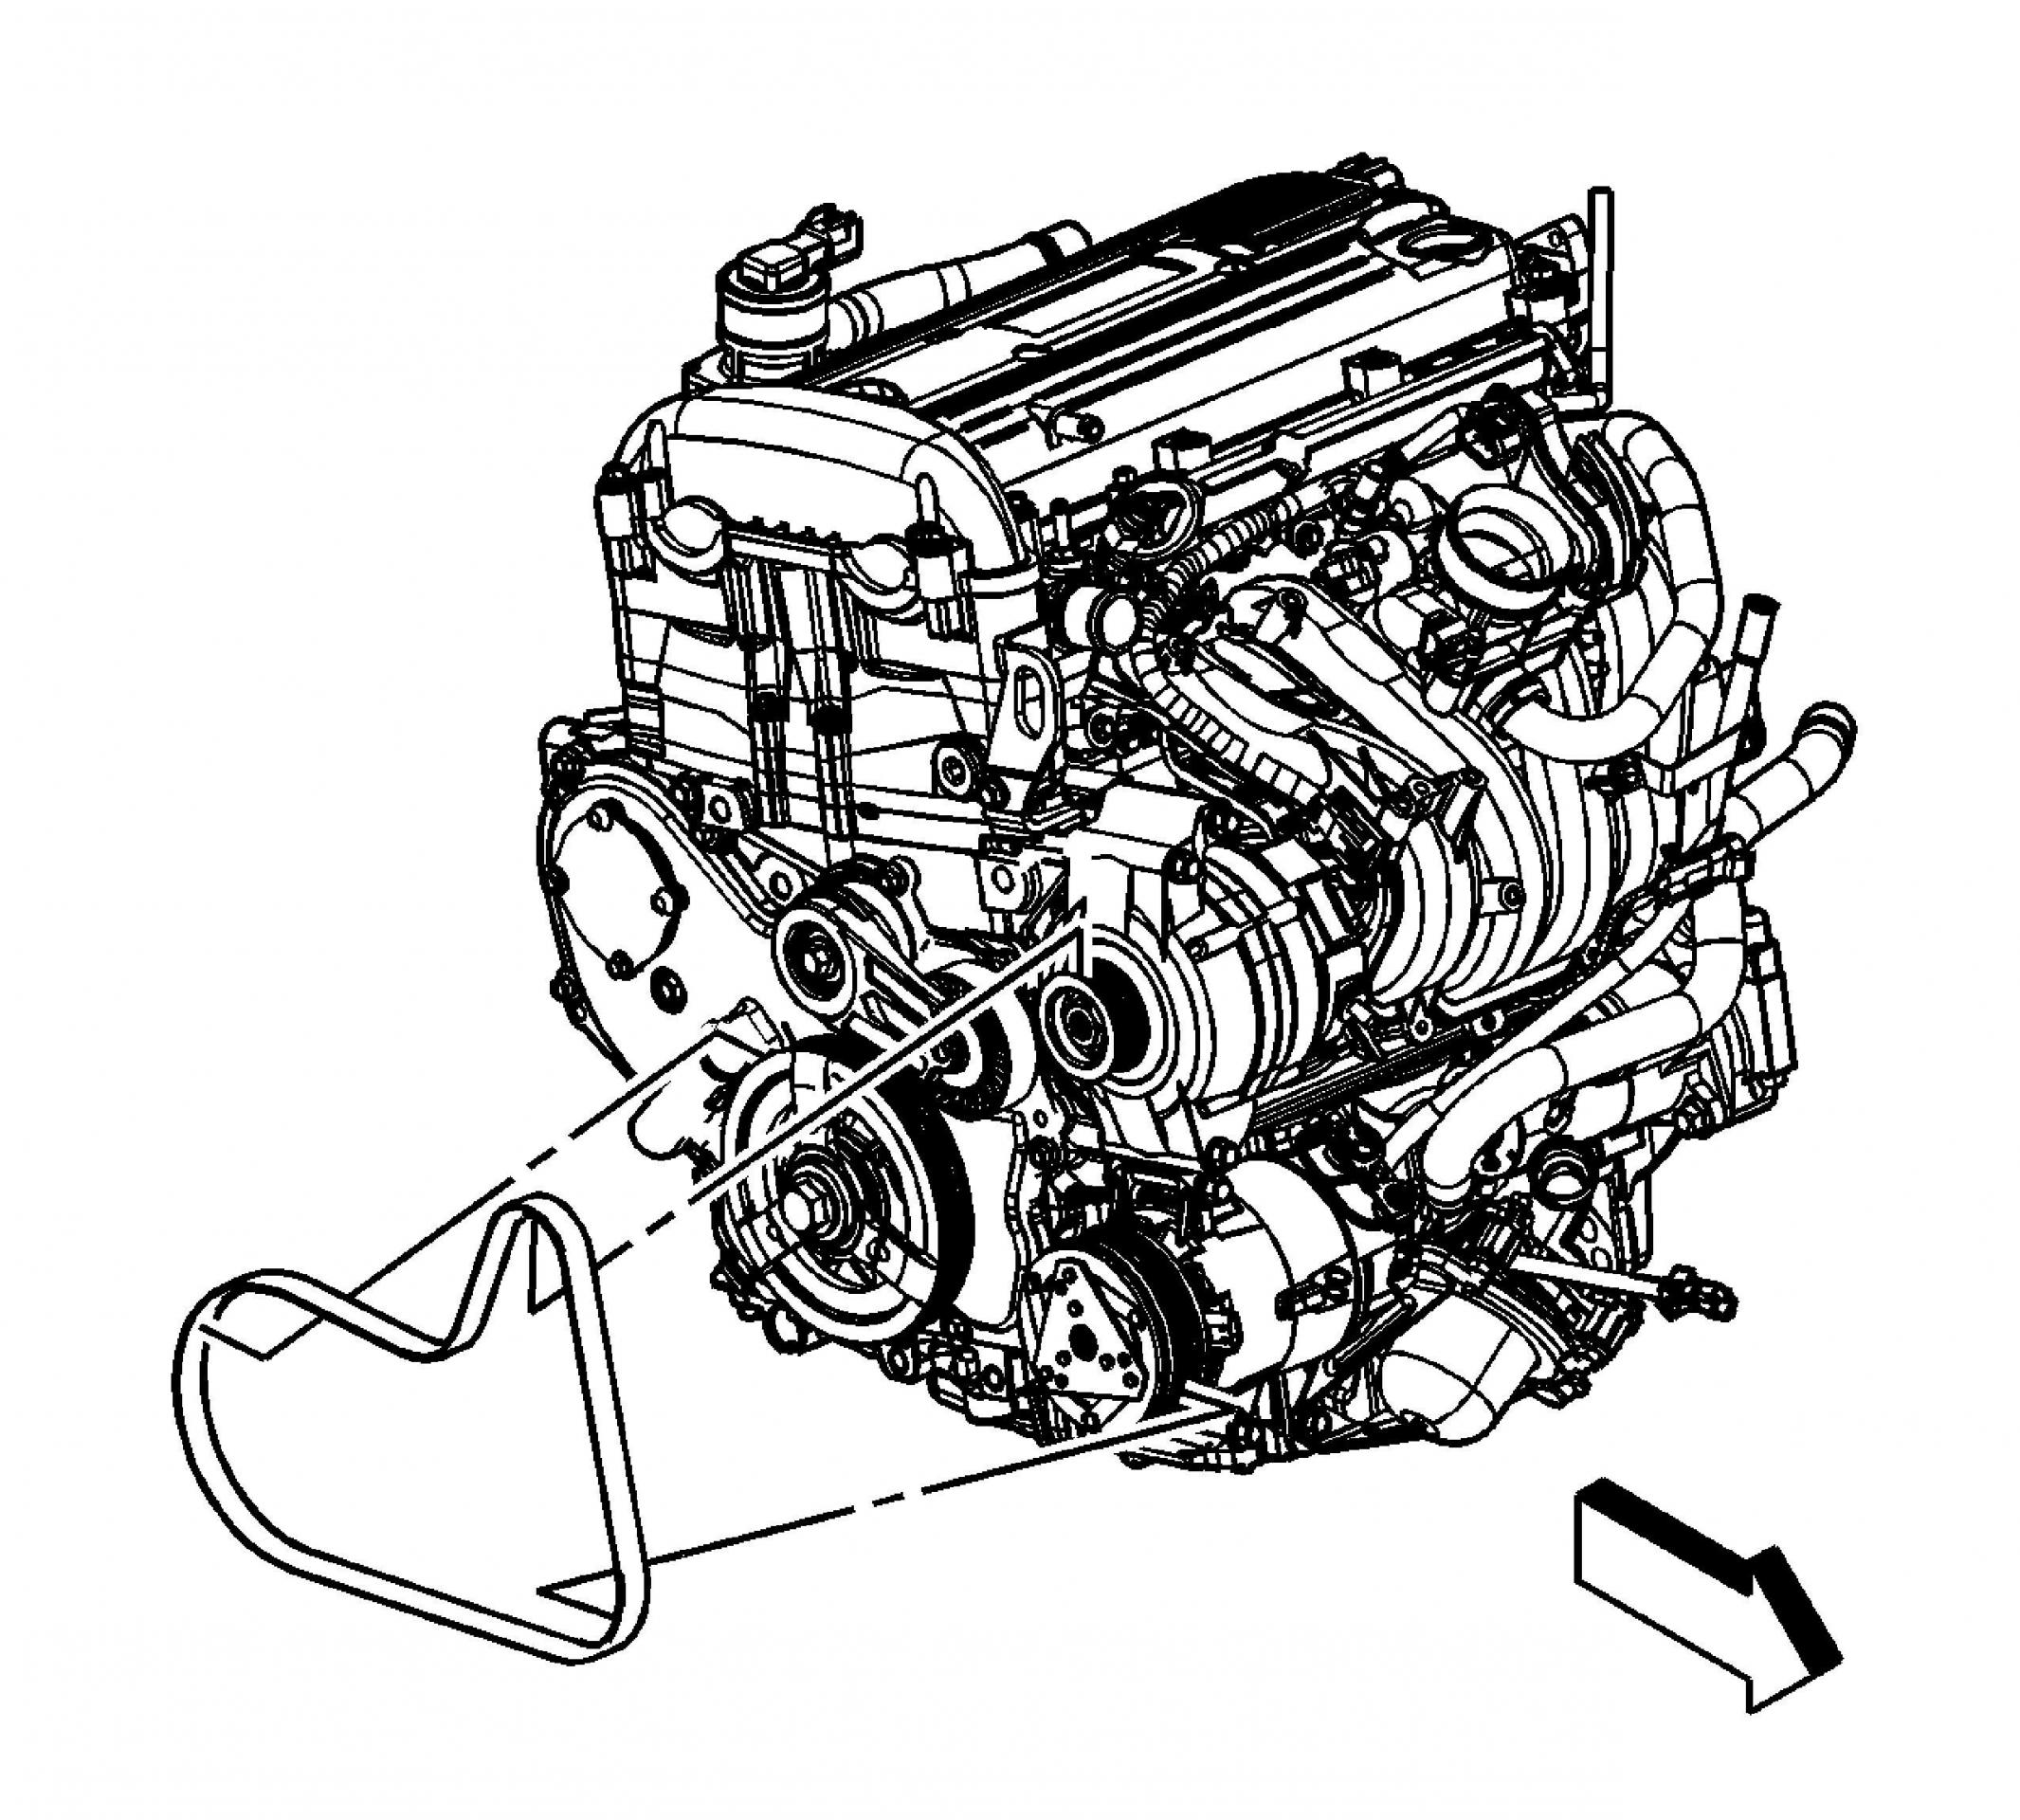 Wrg Equinox Engine Diagram